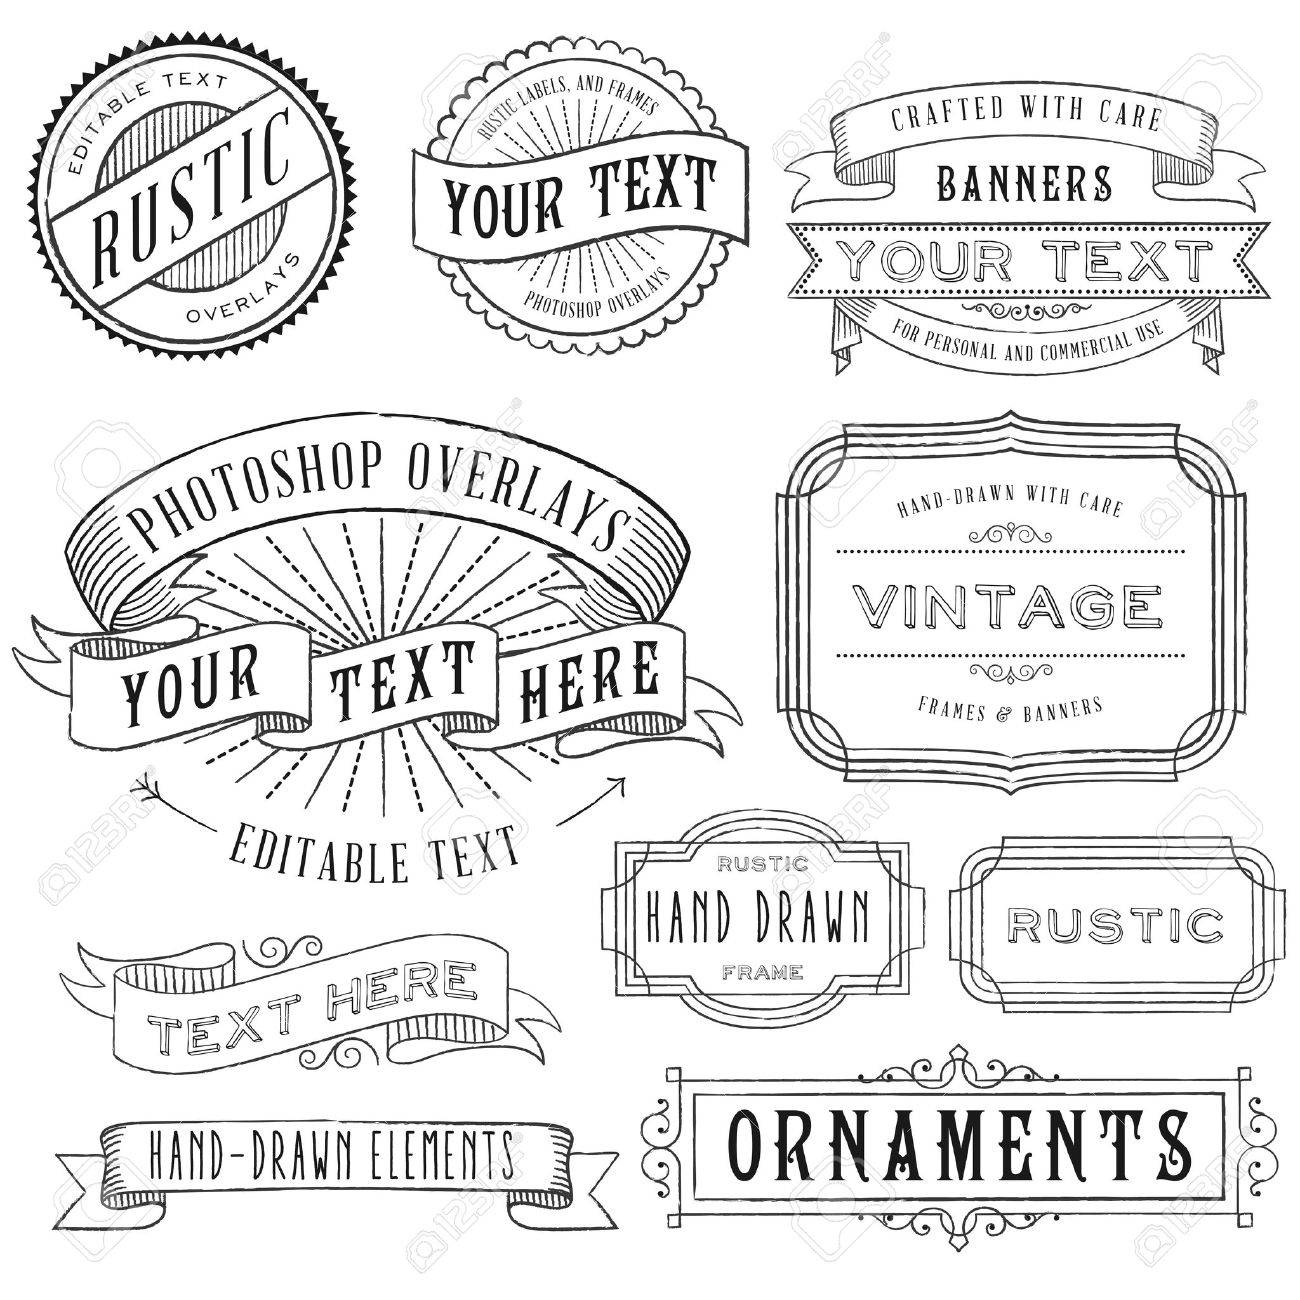 Rustic Frames Set - Rustic Vintage Frames And Banners Set Royalty ...